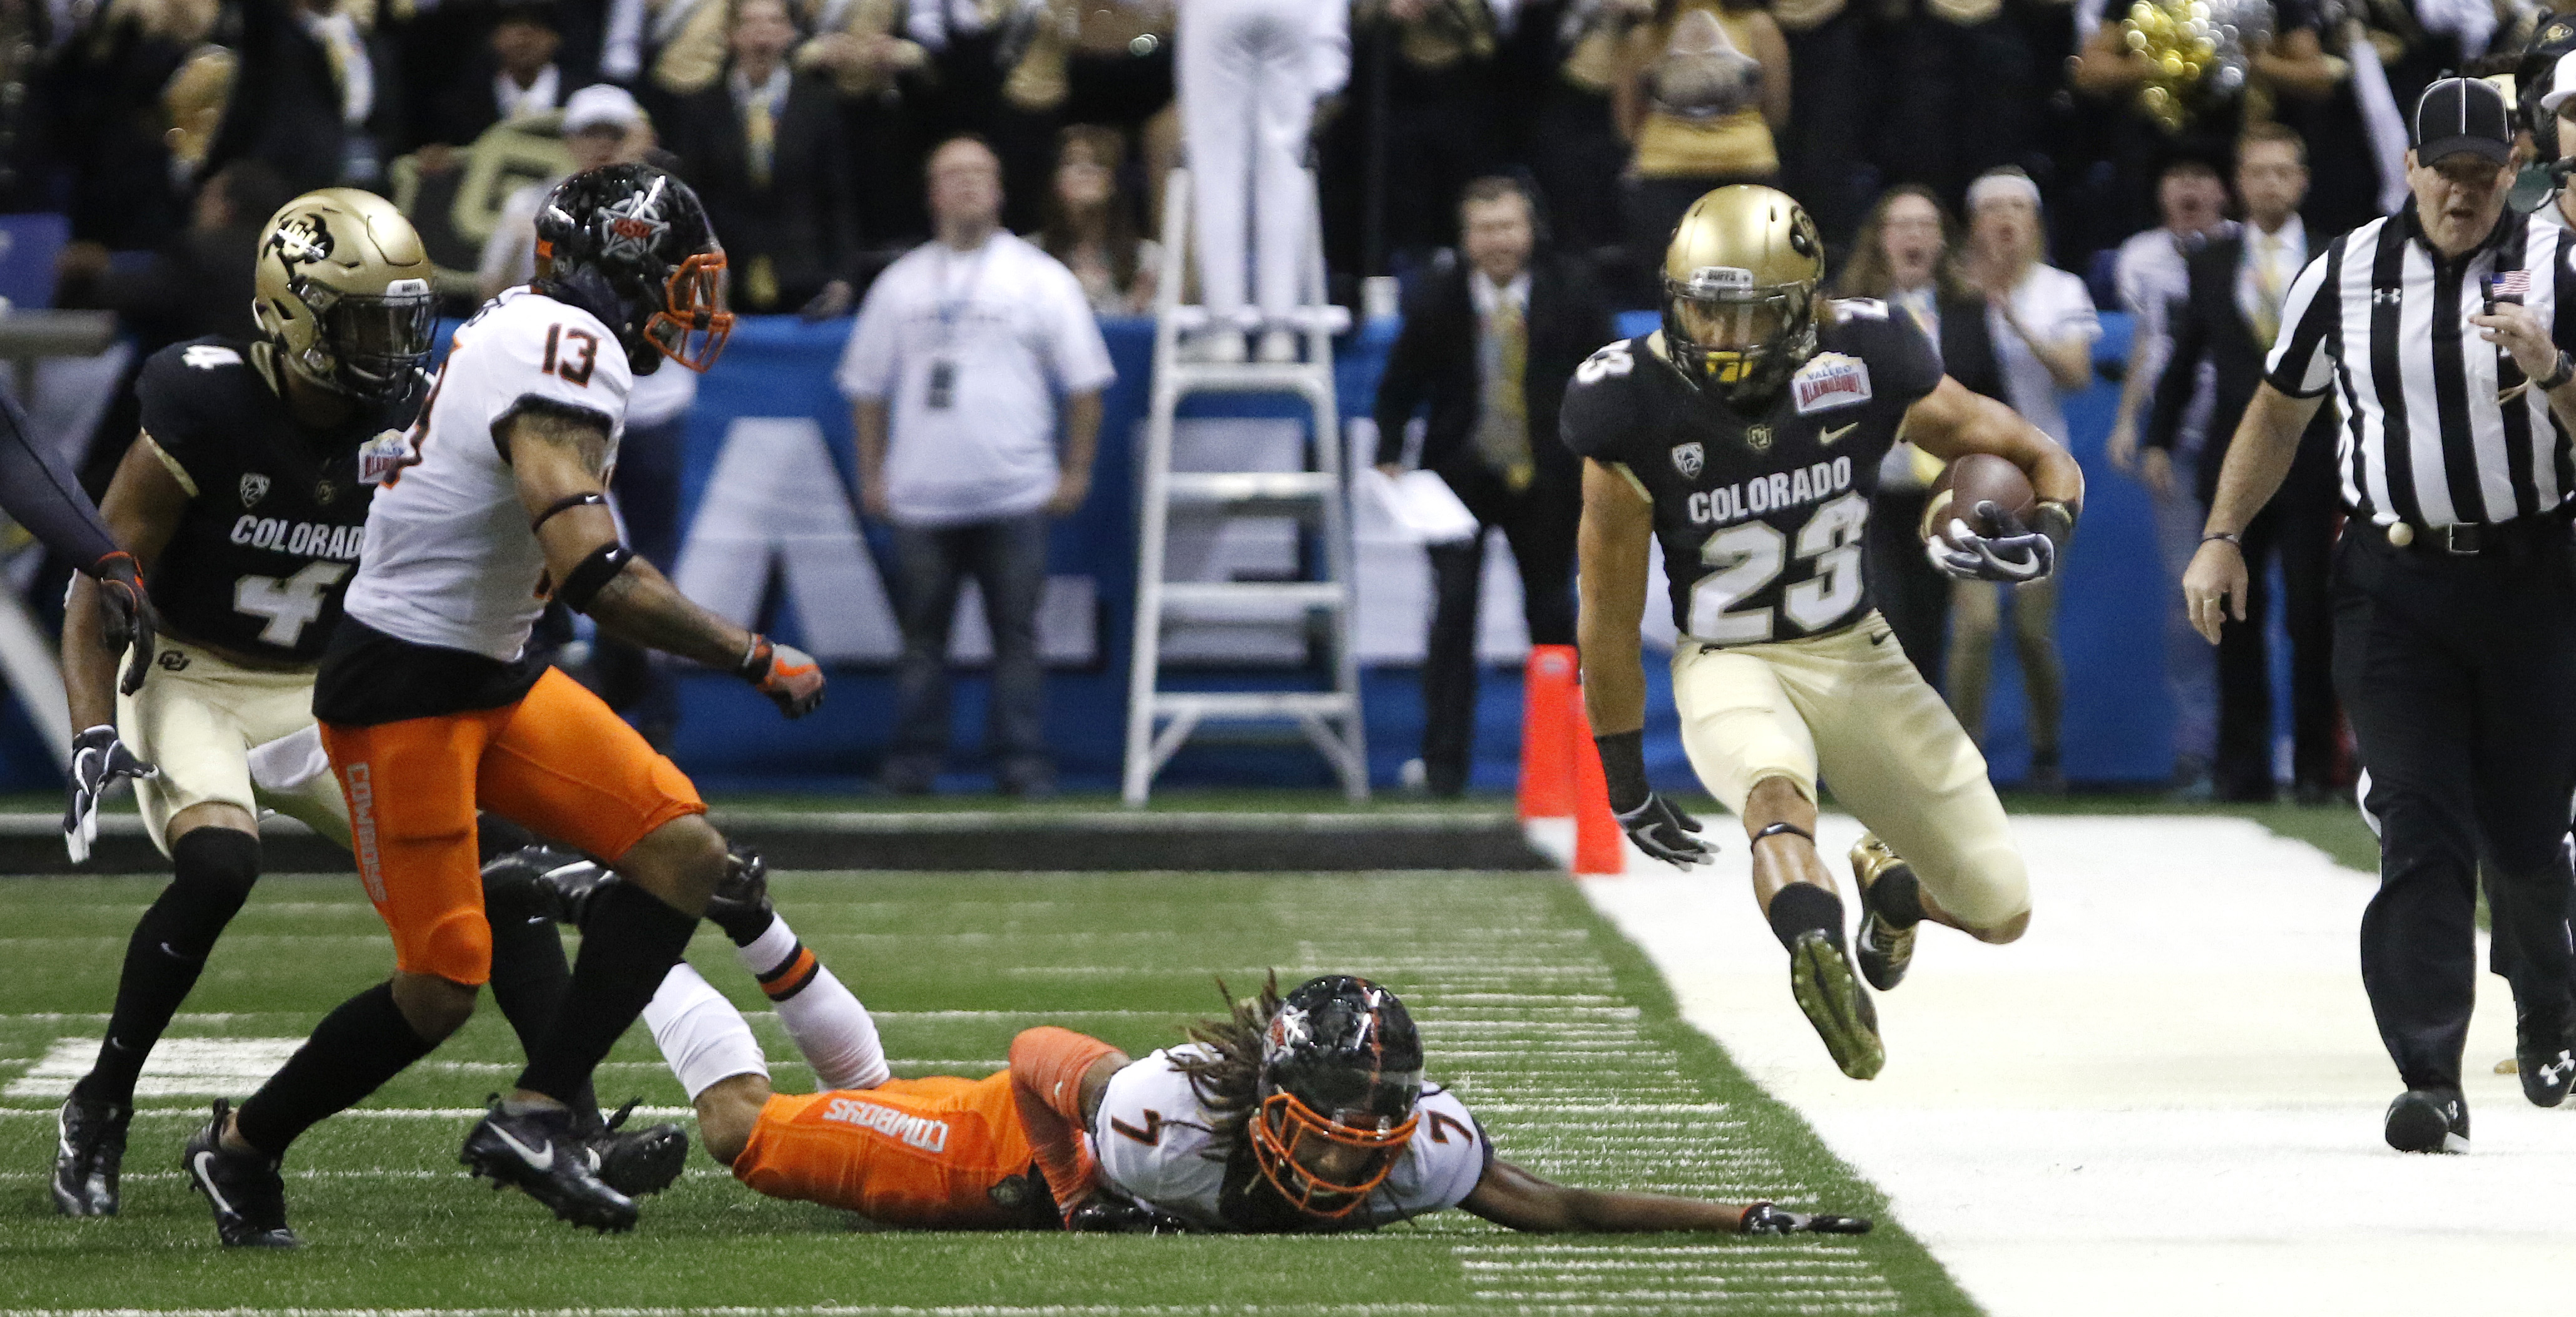 SAN ANTONIO,TX - DECEMBER 29: Ahkello Witherspoon #23 of the Colorado Buffaloes leaps over the would be tackle of Ramon Richards #7 of the Oklahoma State Cowboys in the Valero Alamo Bowl at the Alamodome on December 29, 2016 in San Antonio, Texas. (Photo by Ronald Cortes/Getty Images)